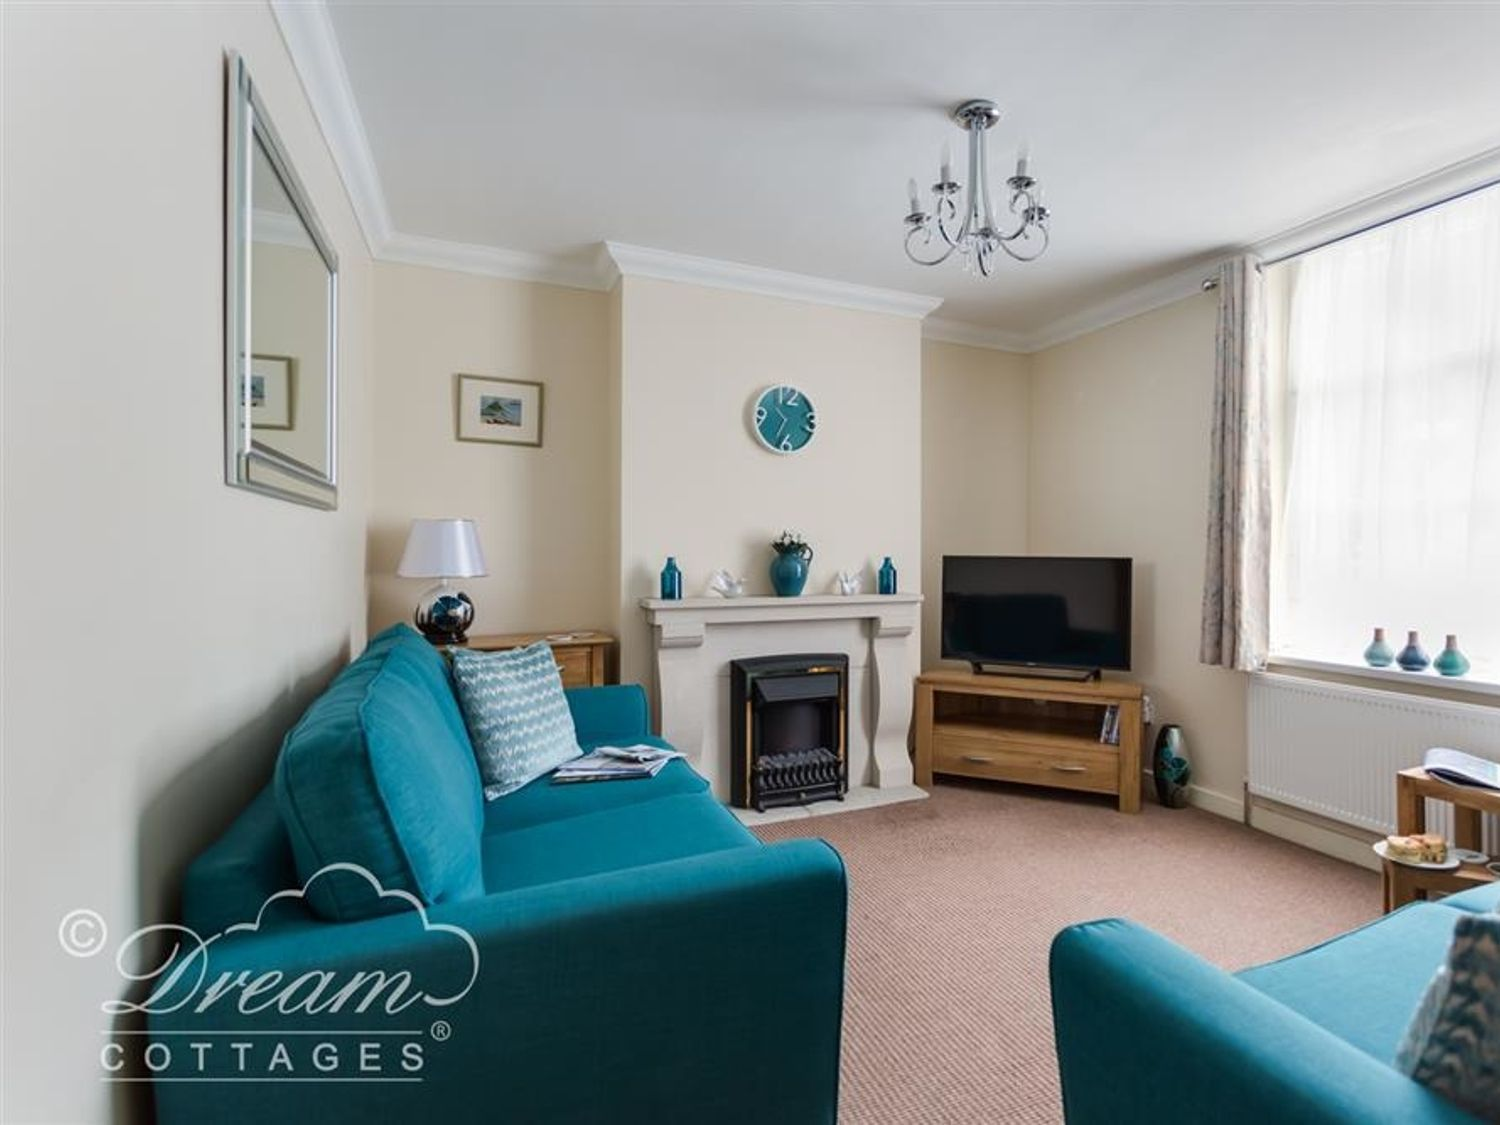 Teal Cottage - Dorset - 994716 - photo 1